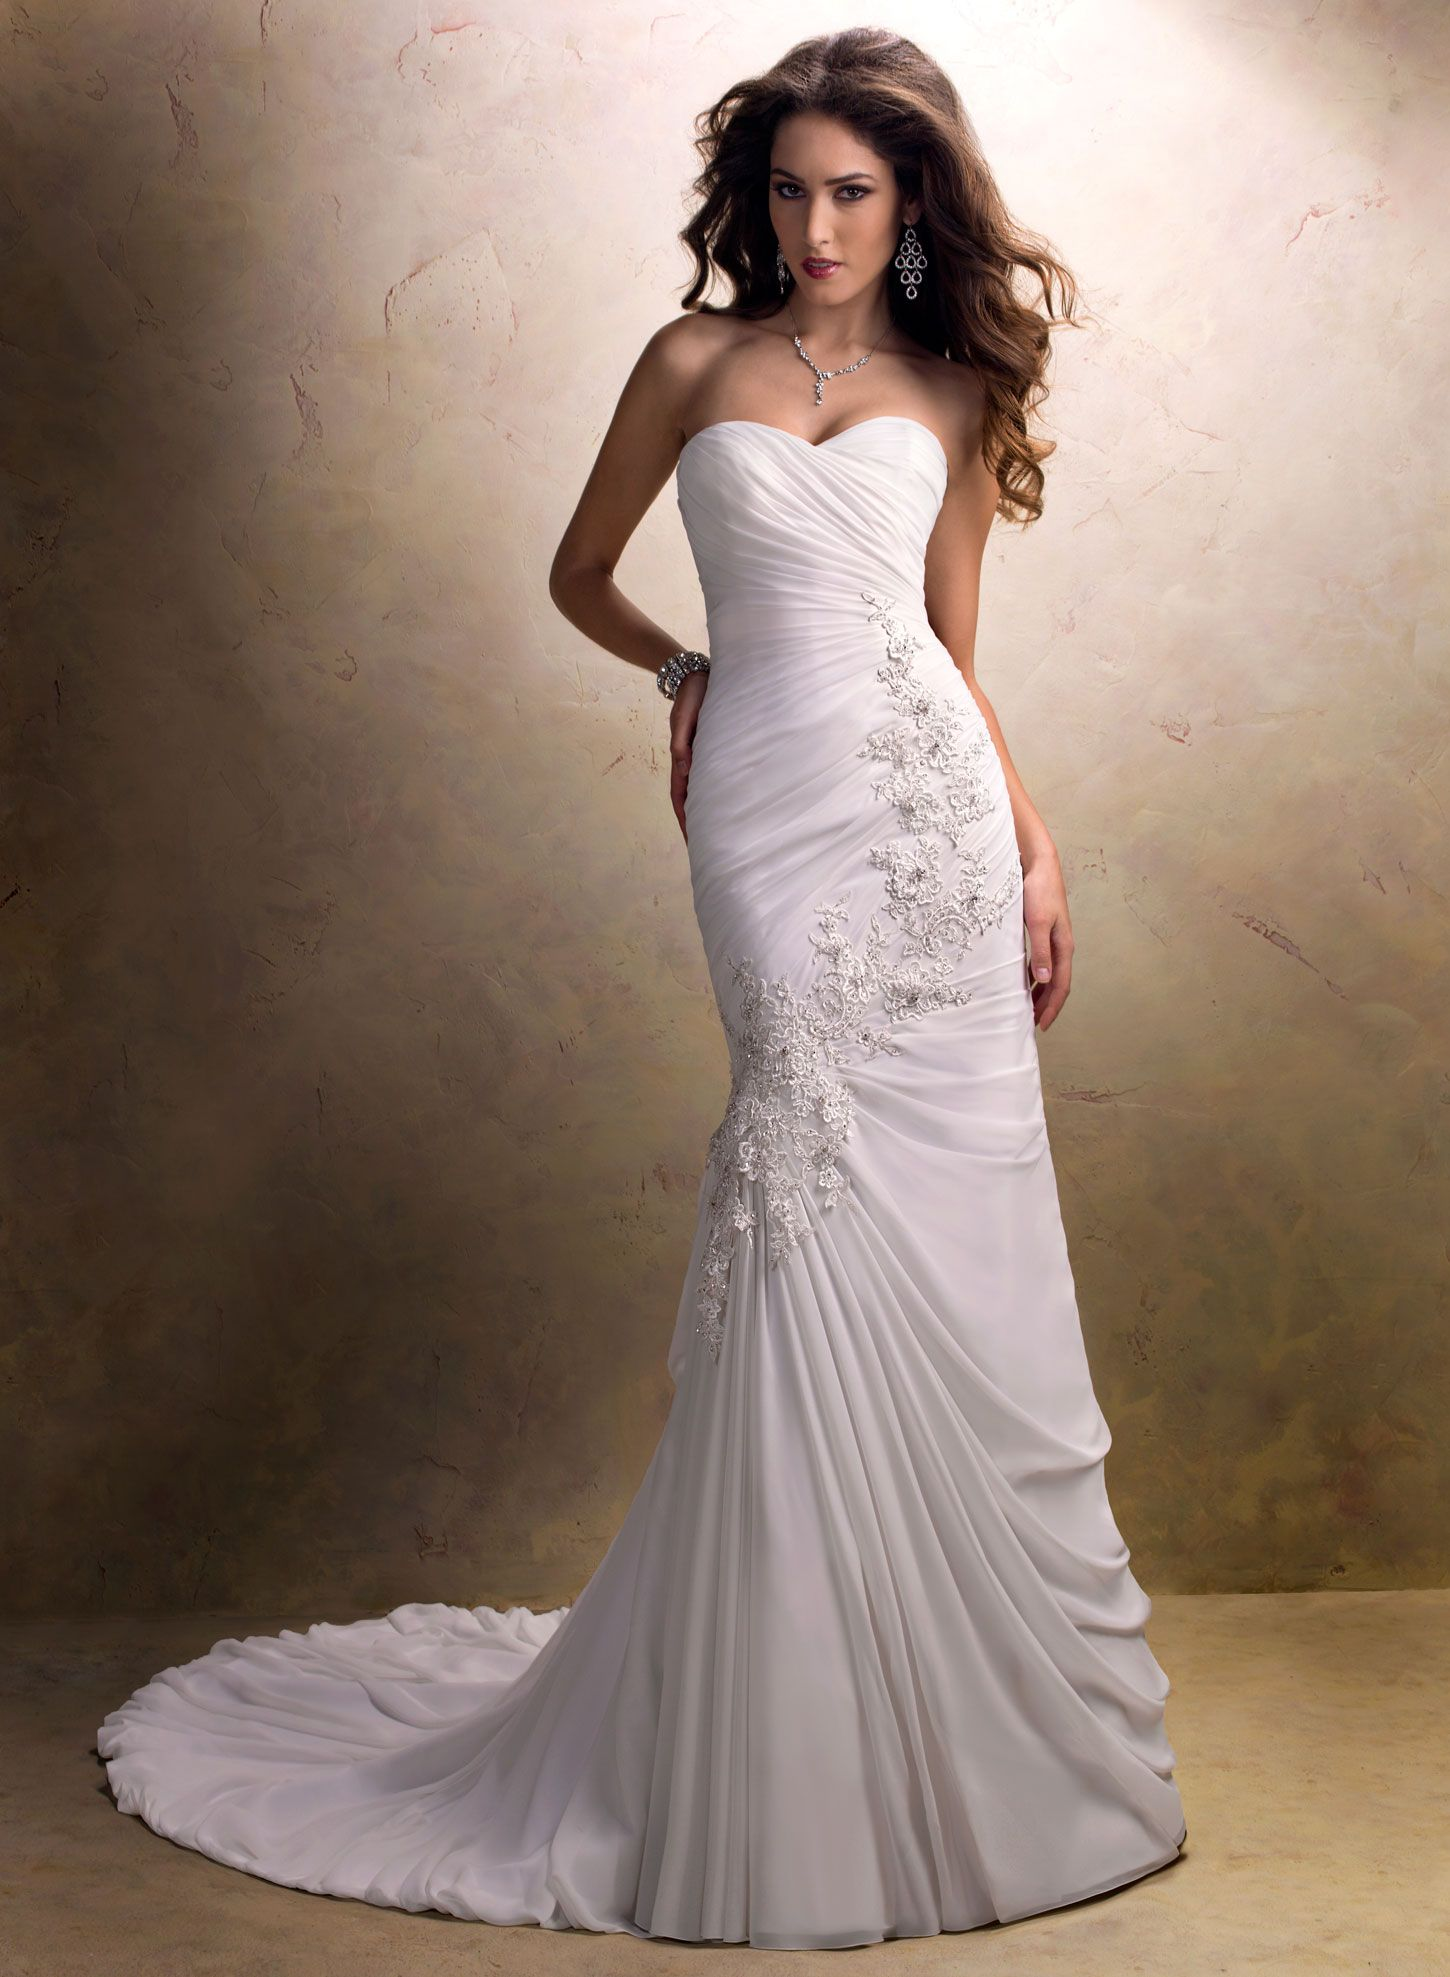 Chiffon wedding dresses  Pin by Melissa Evans on Maggie Sottero Bridal  Pinterest  Maggie